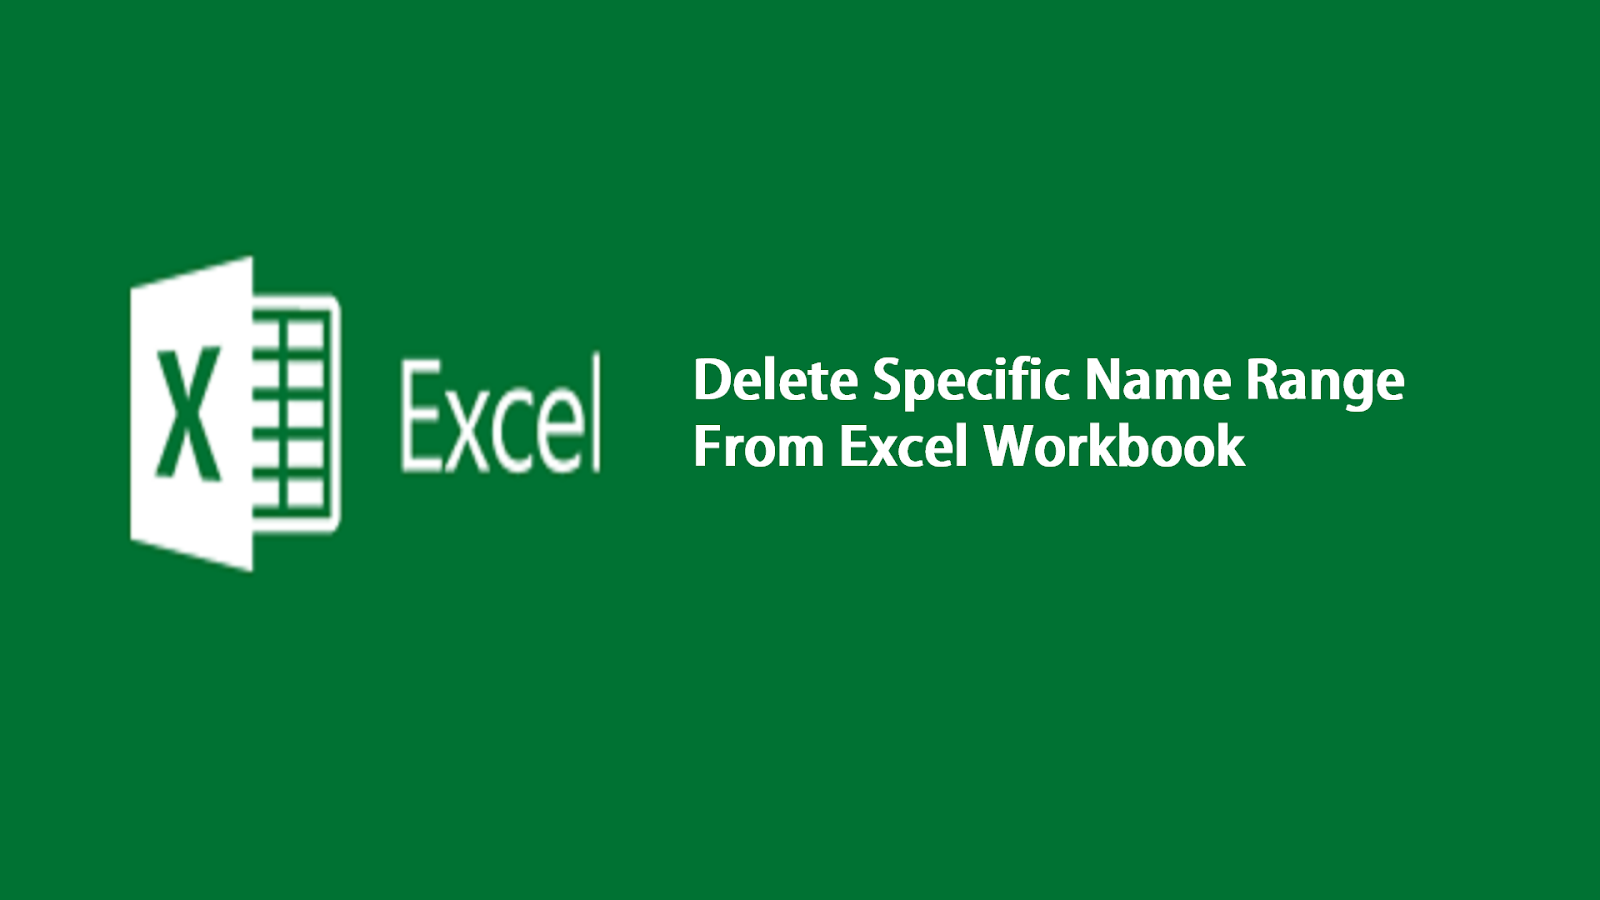 Excel Vba Macro To Delete Specific Name Ranges In A